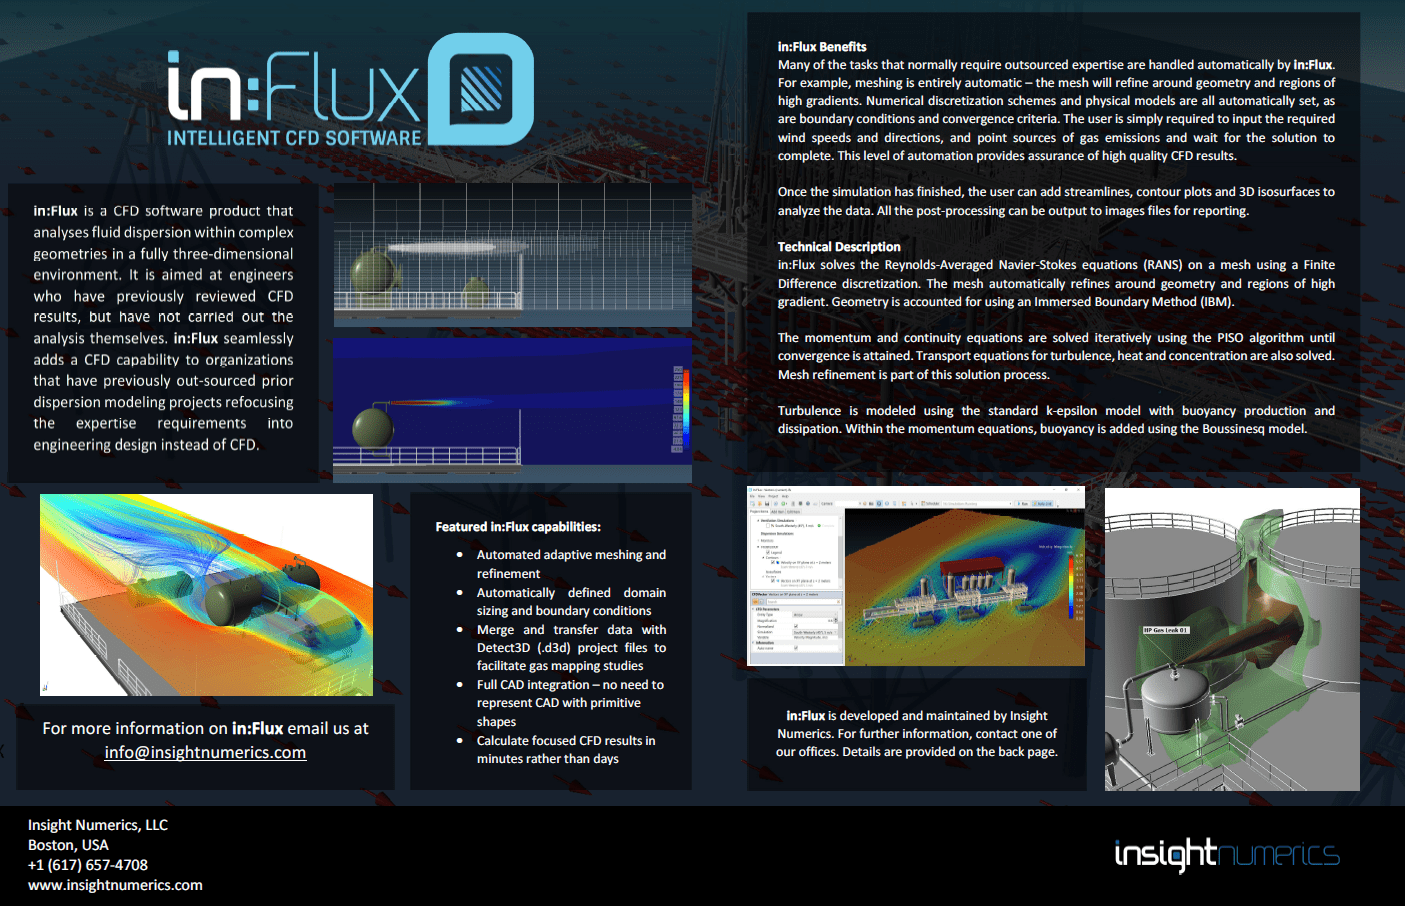 in:Flux Intelligent CFD Software Brochure